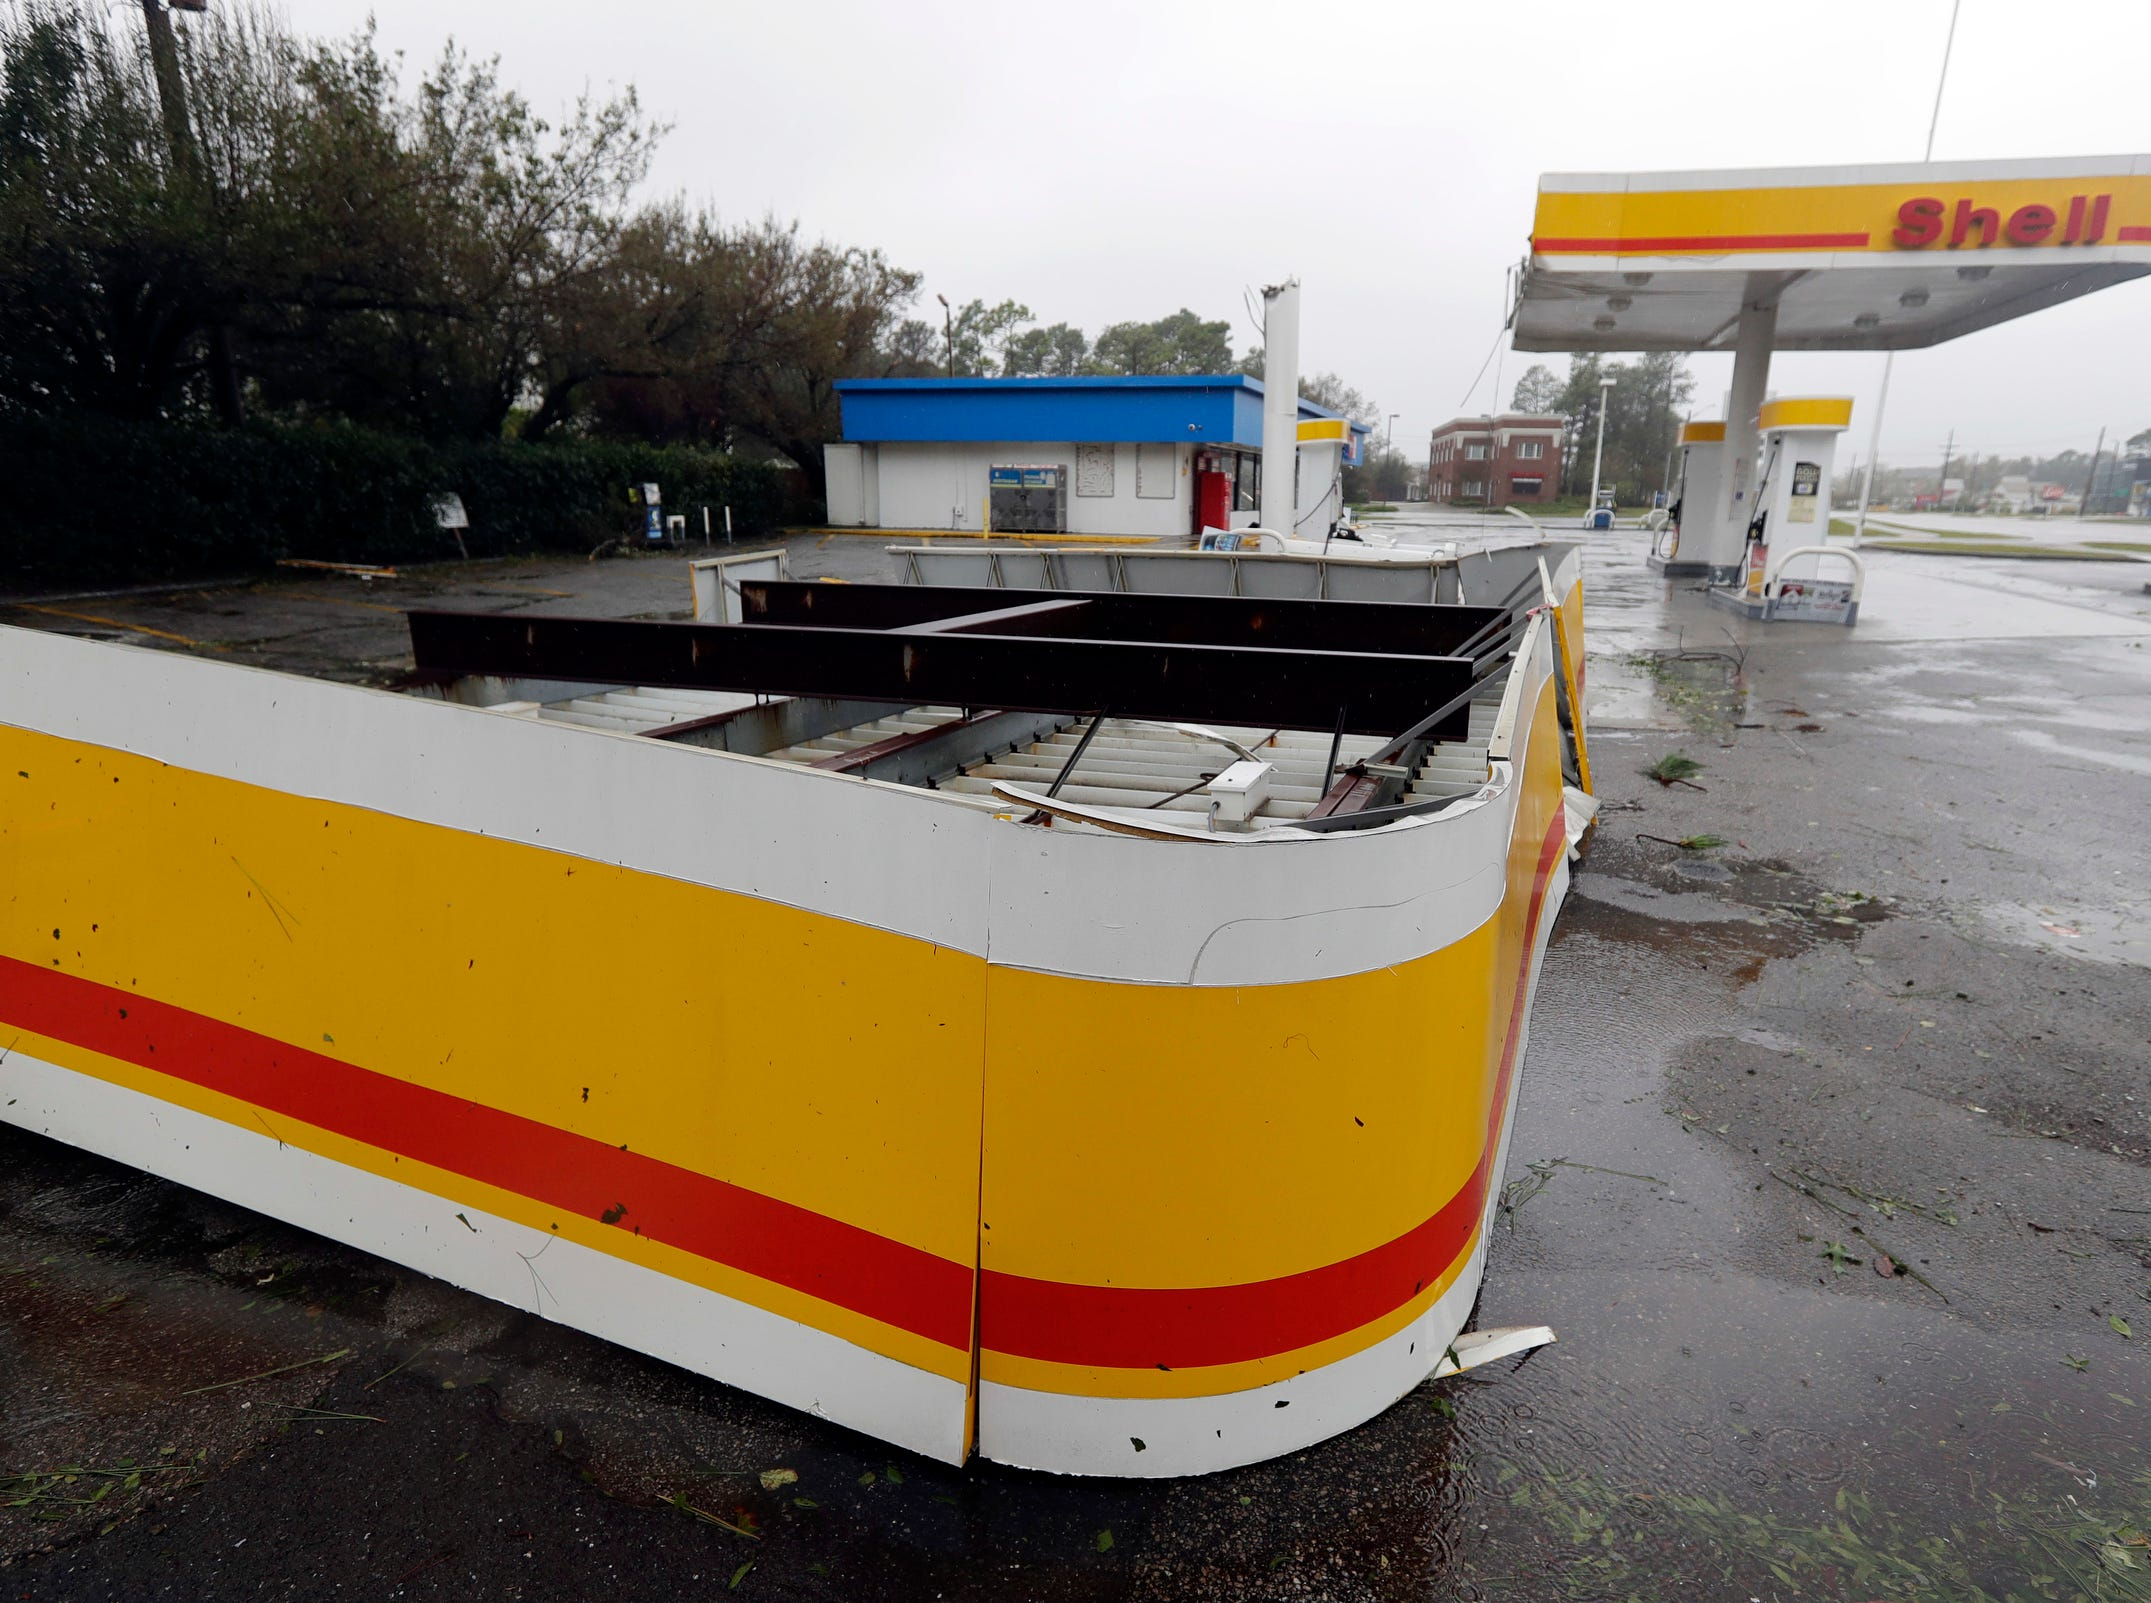 The shelter of a gas station lies on the ground in Wilmington, N.C., after Hurricane Florence made landfall Friday.